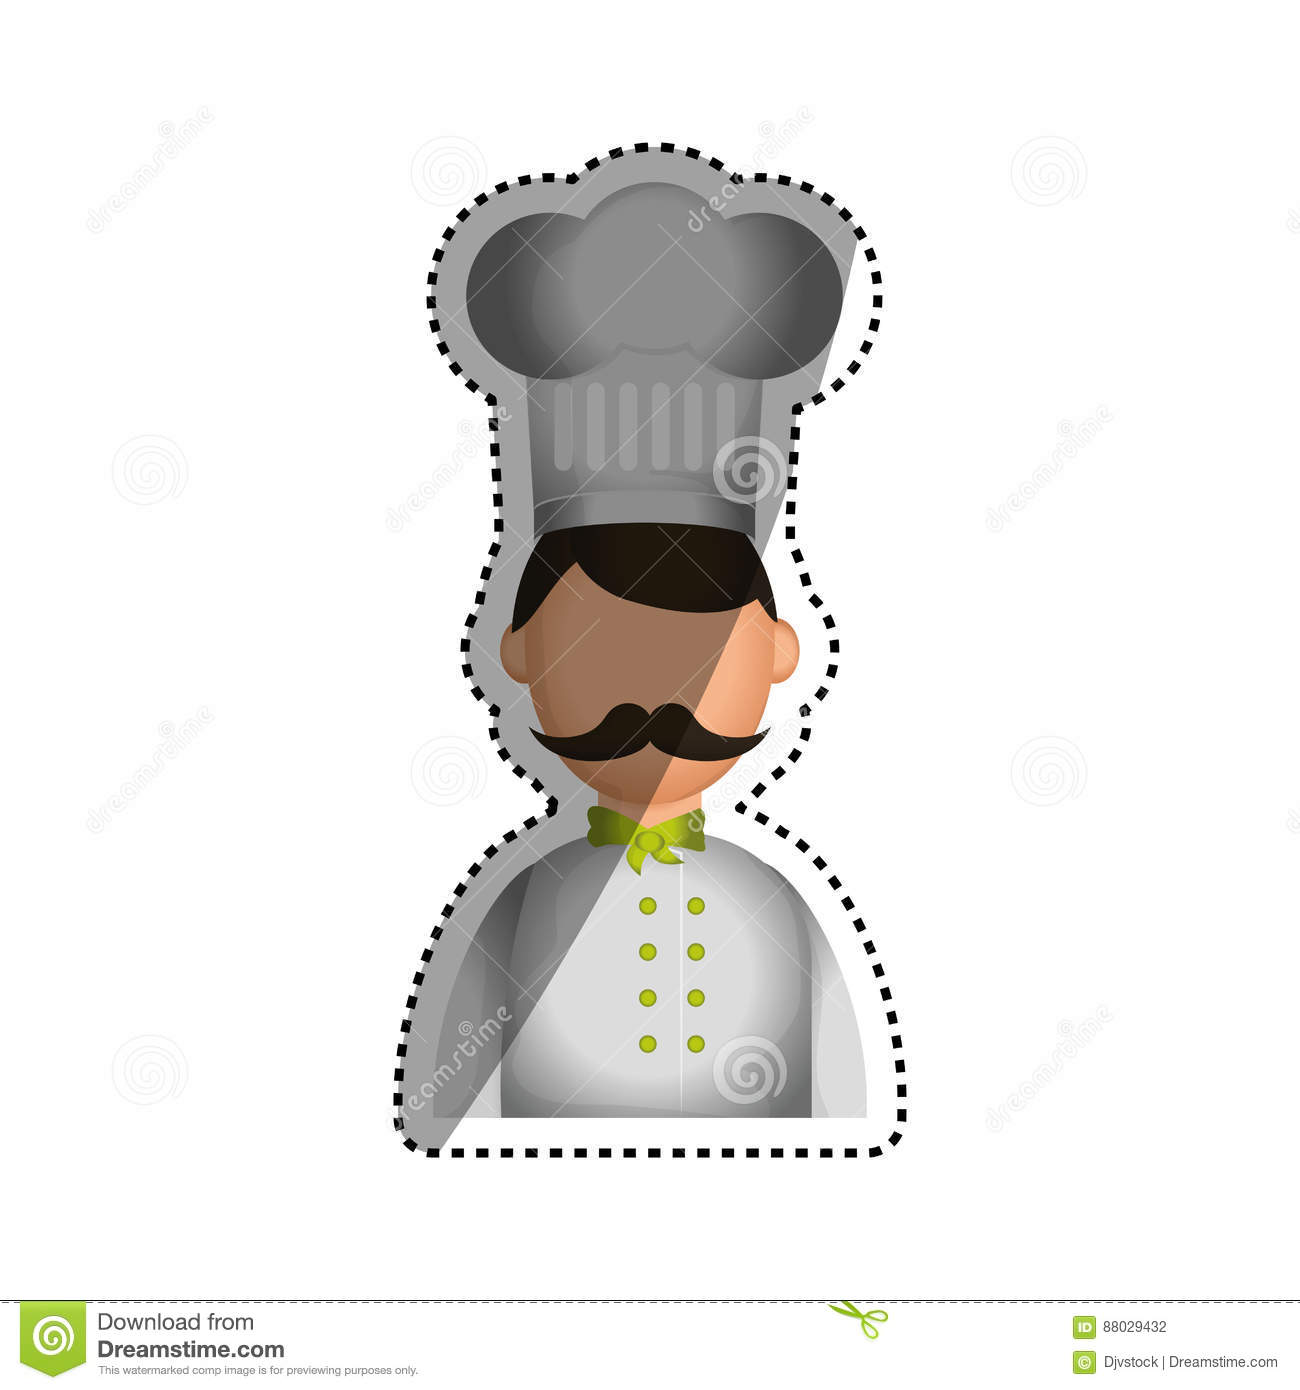 Graphic Design Cartoon Character : Chef cartoon character stock illustration image